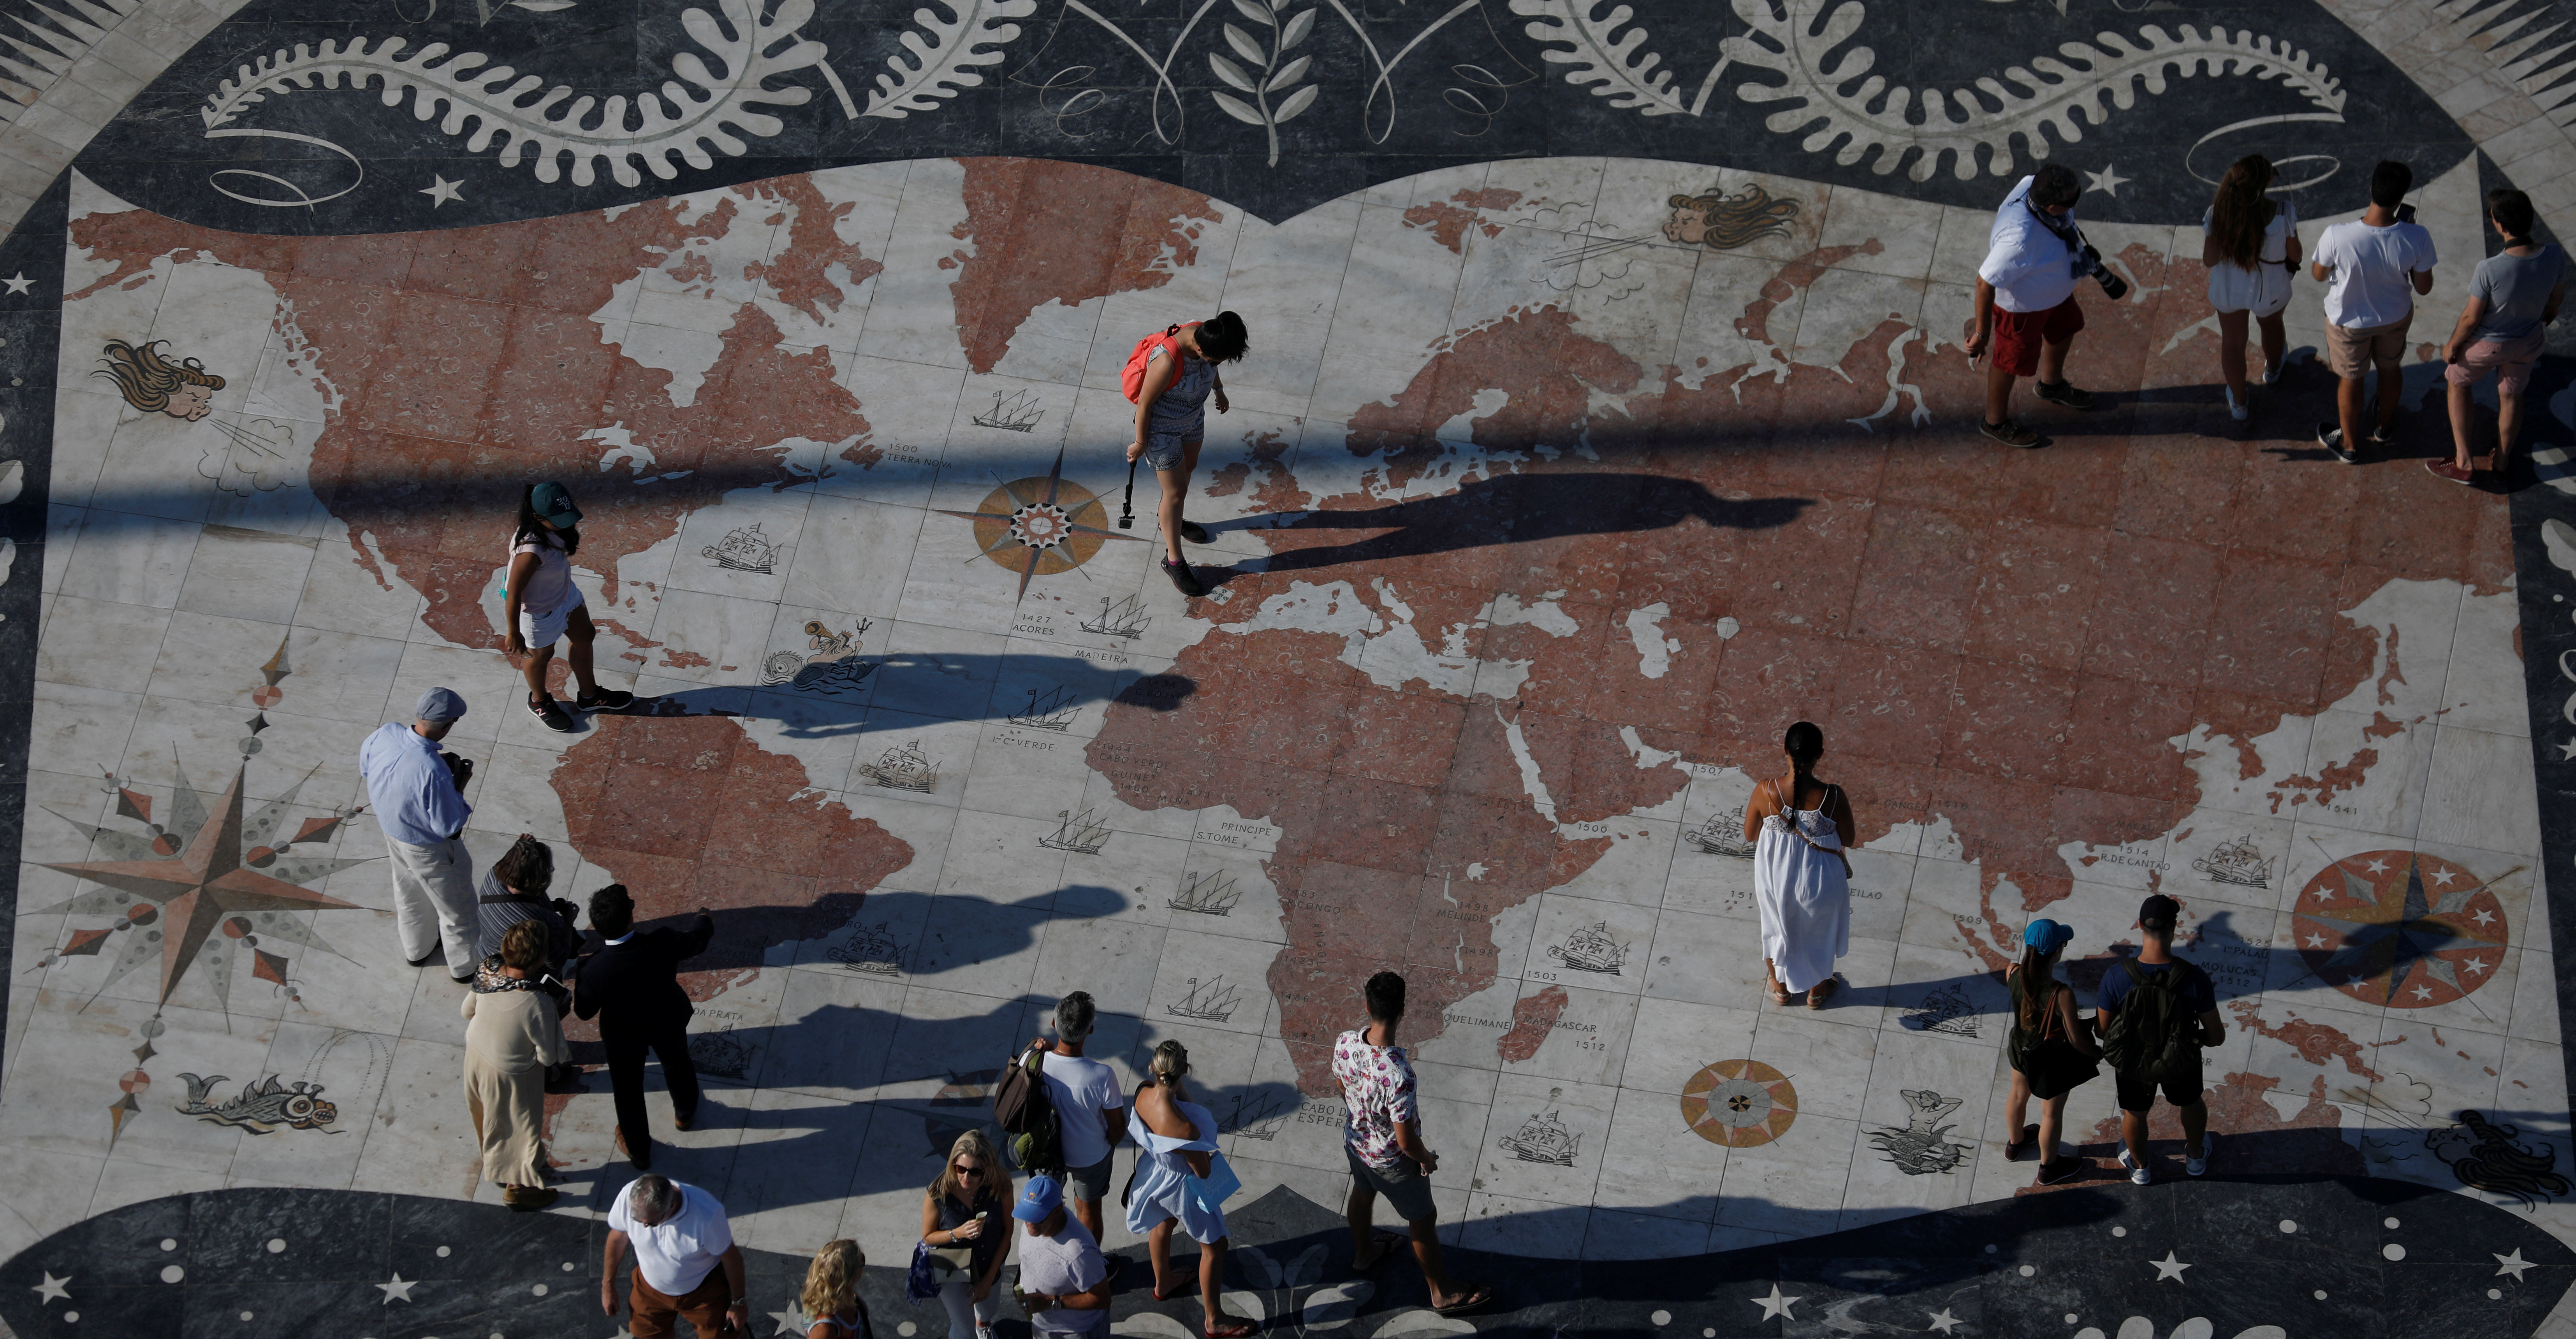 People take pictures at a square decorated with a giant world map in Lisbon, Portugal September 6, 2017.